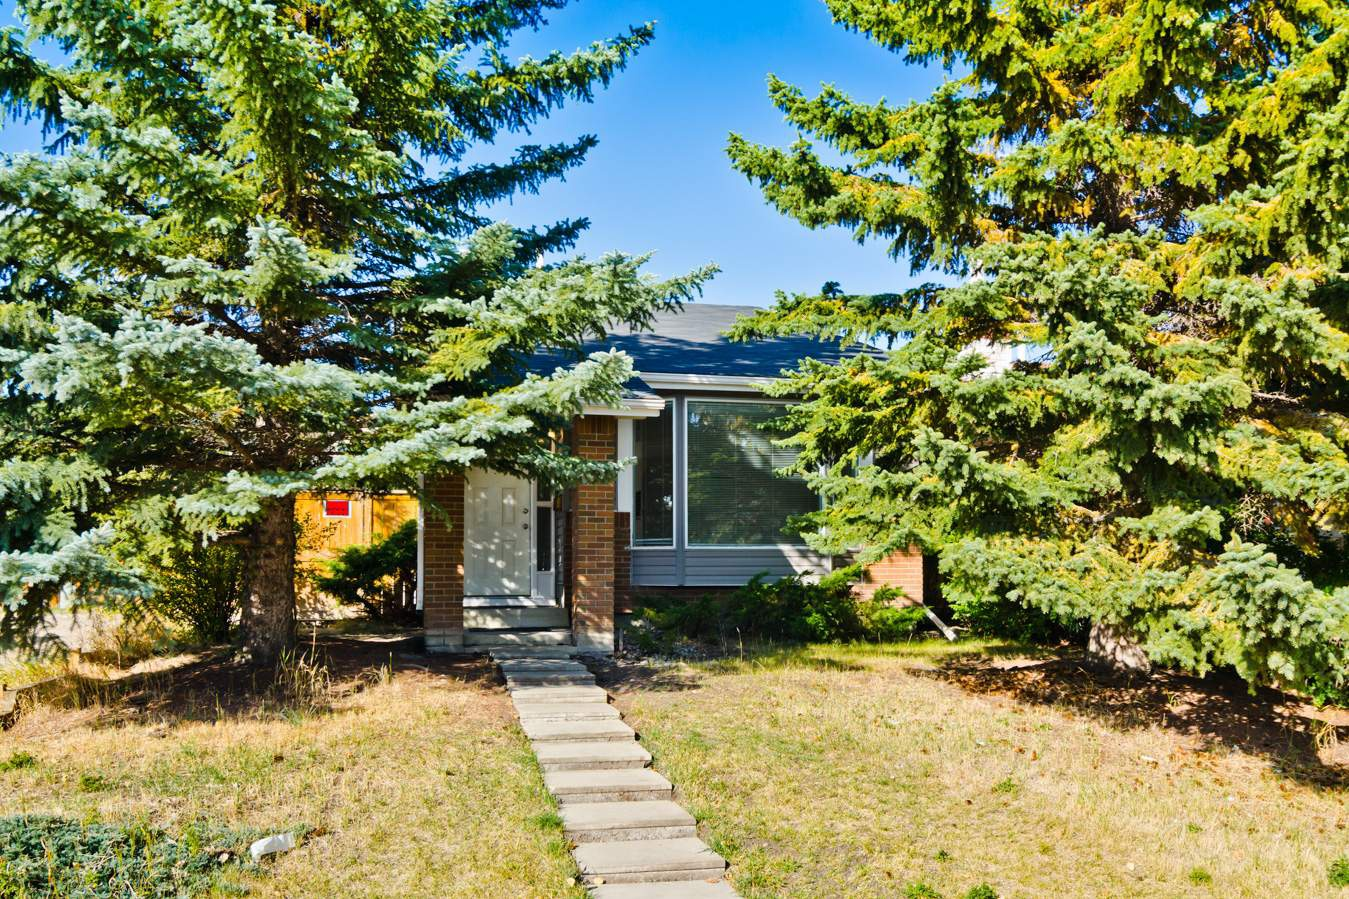 108  Woodglen Close Southwest in Calgary, AB is Now Available